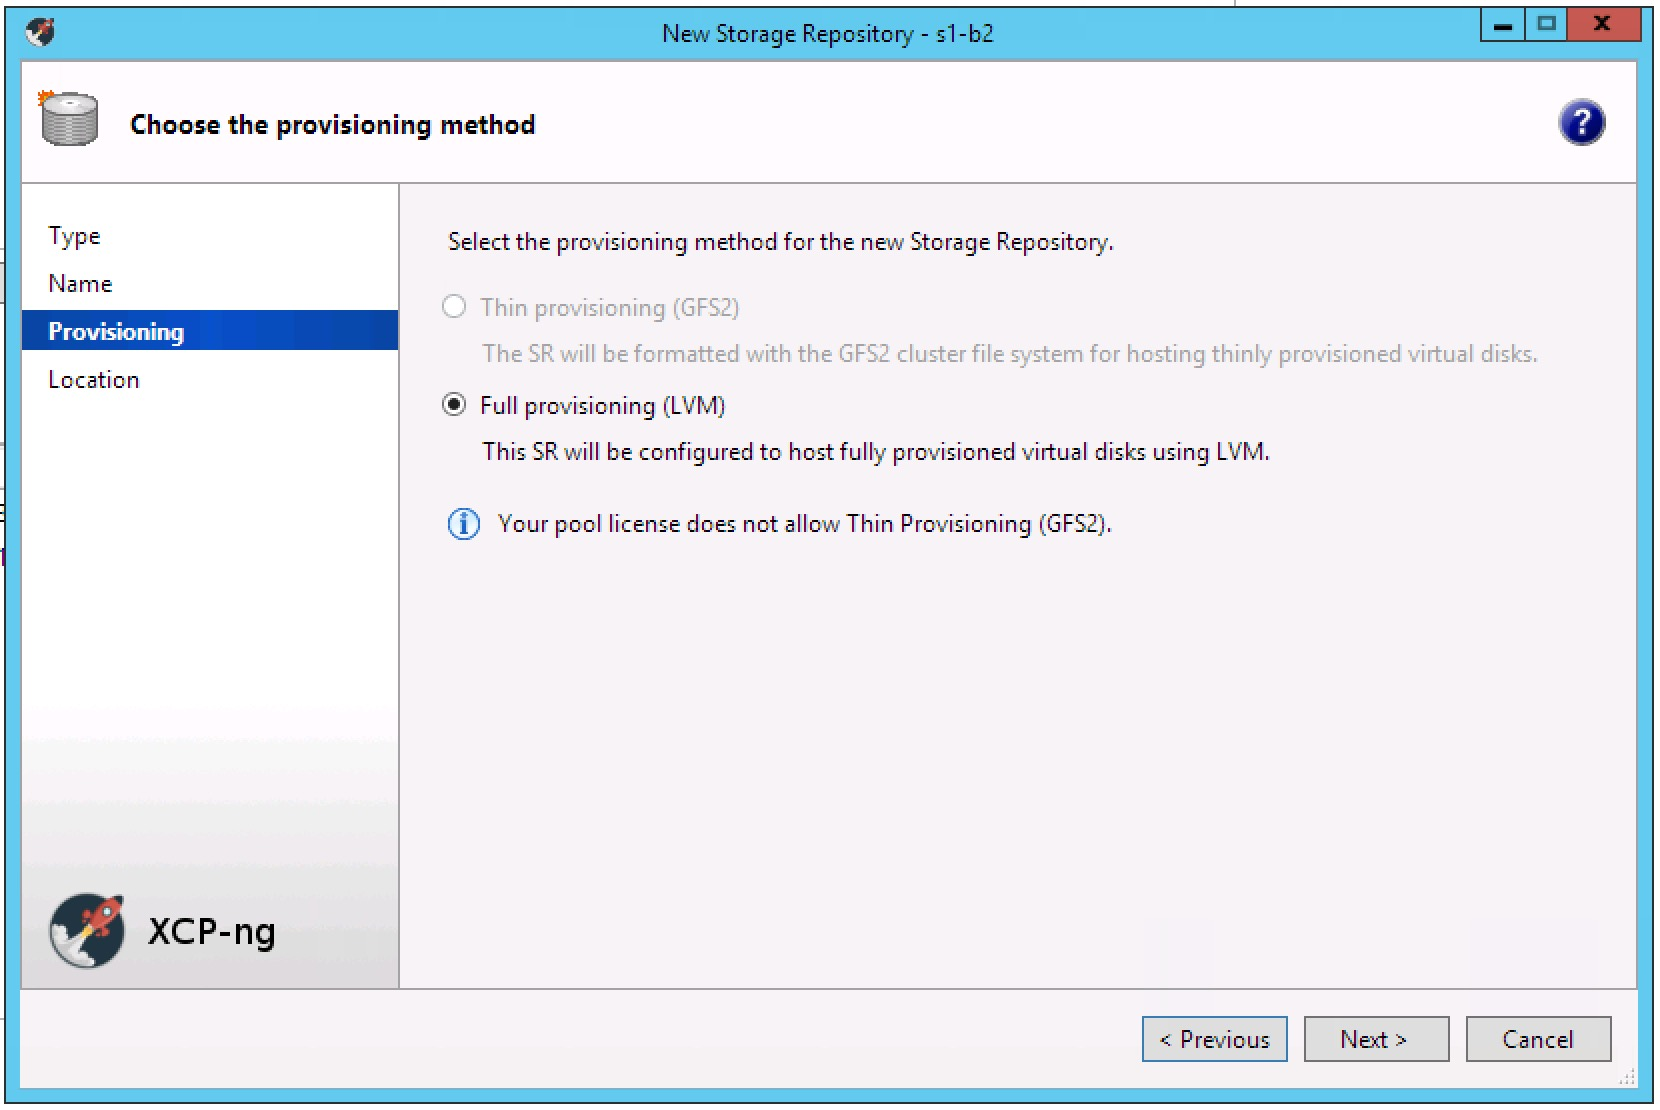 Can't create new iSCSI (LVM) SR - get error about GFS2